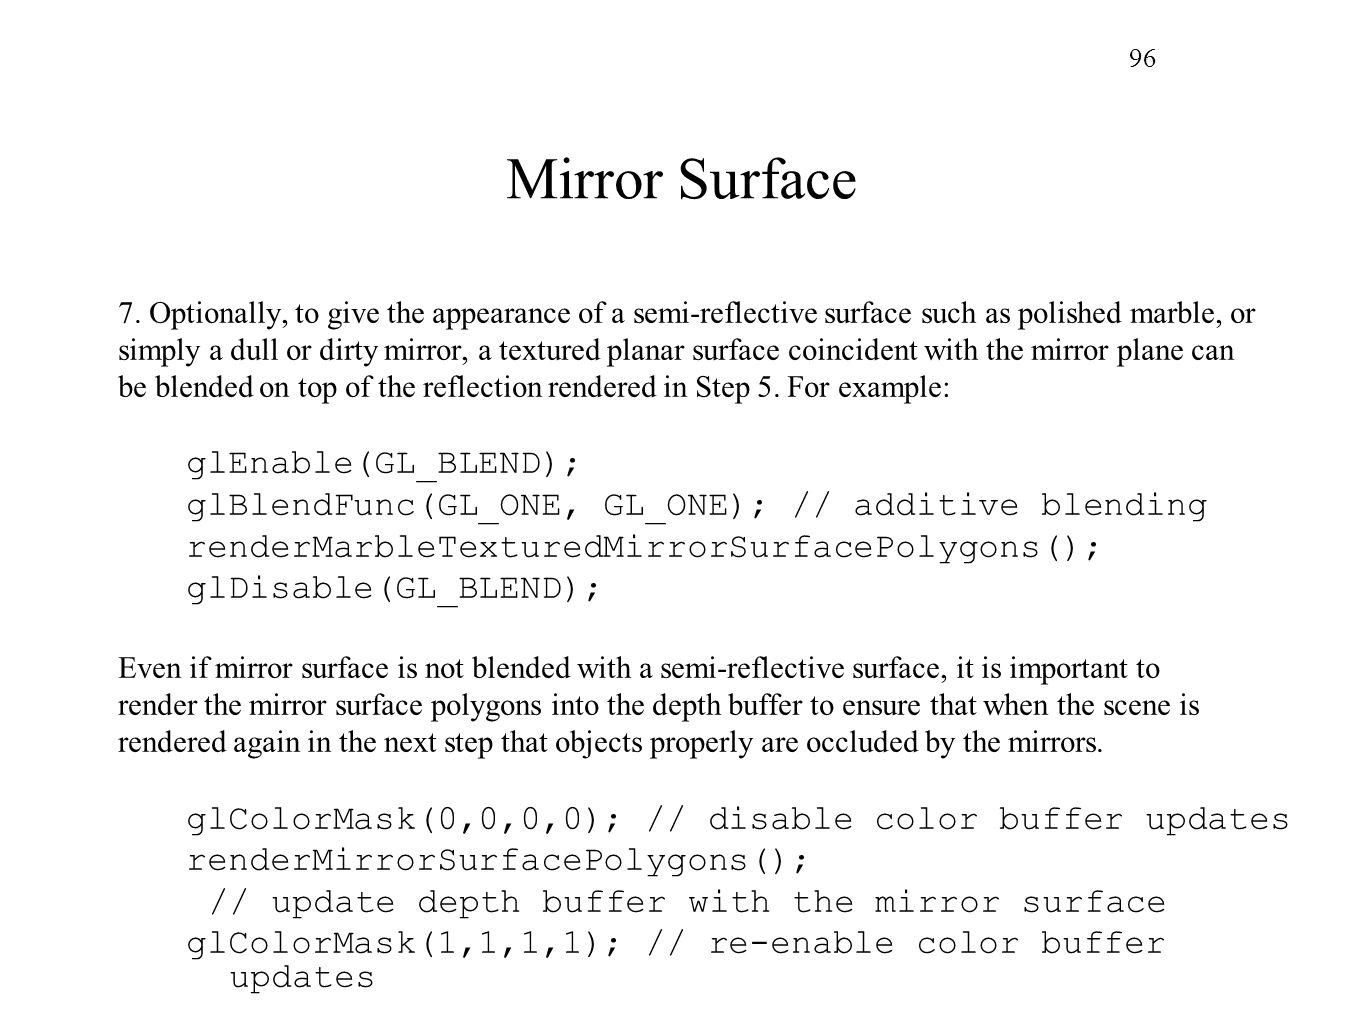 Mirror Surface glEnable(GL_BLEND);